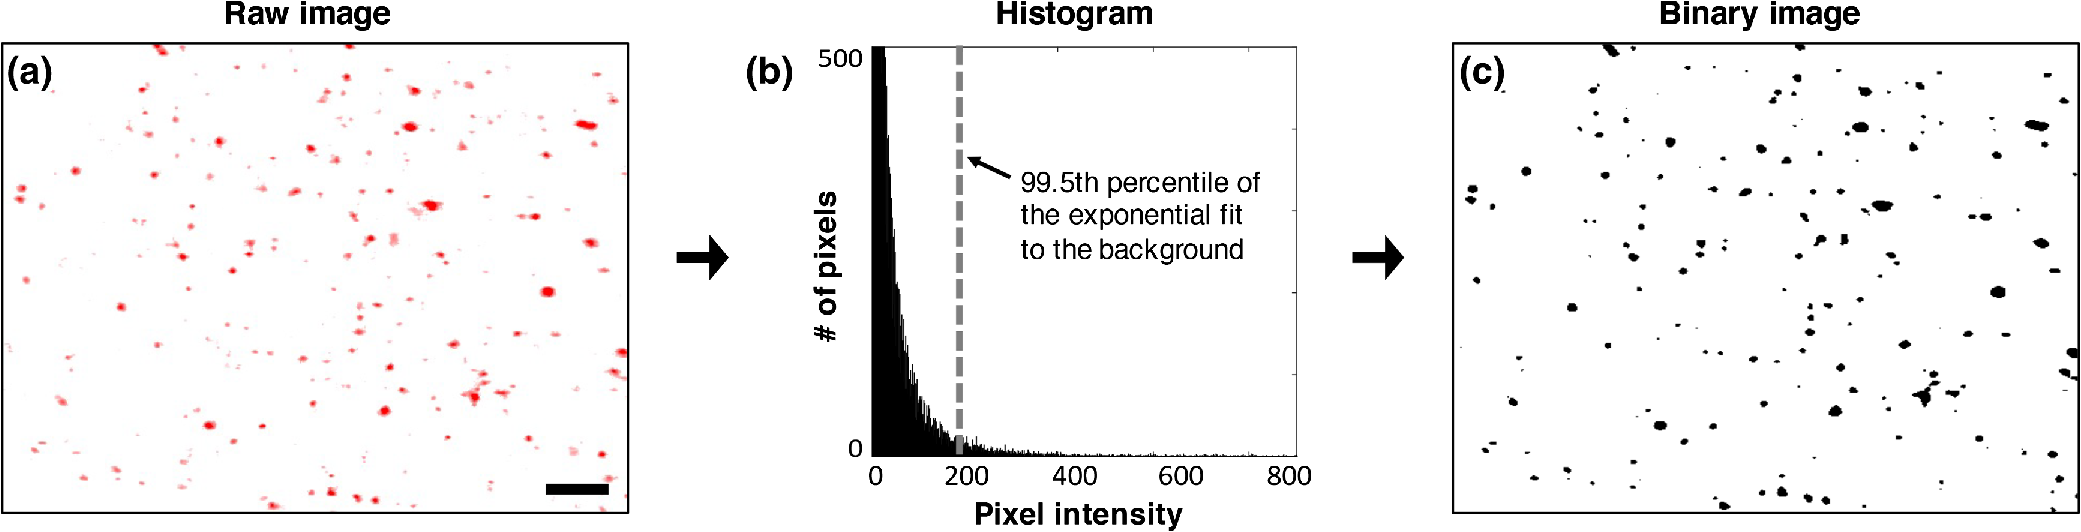 Optical-sectioning microscopy of protoporphyrin IX fluorescence in